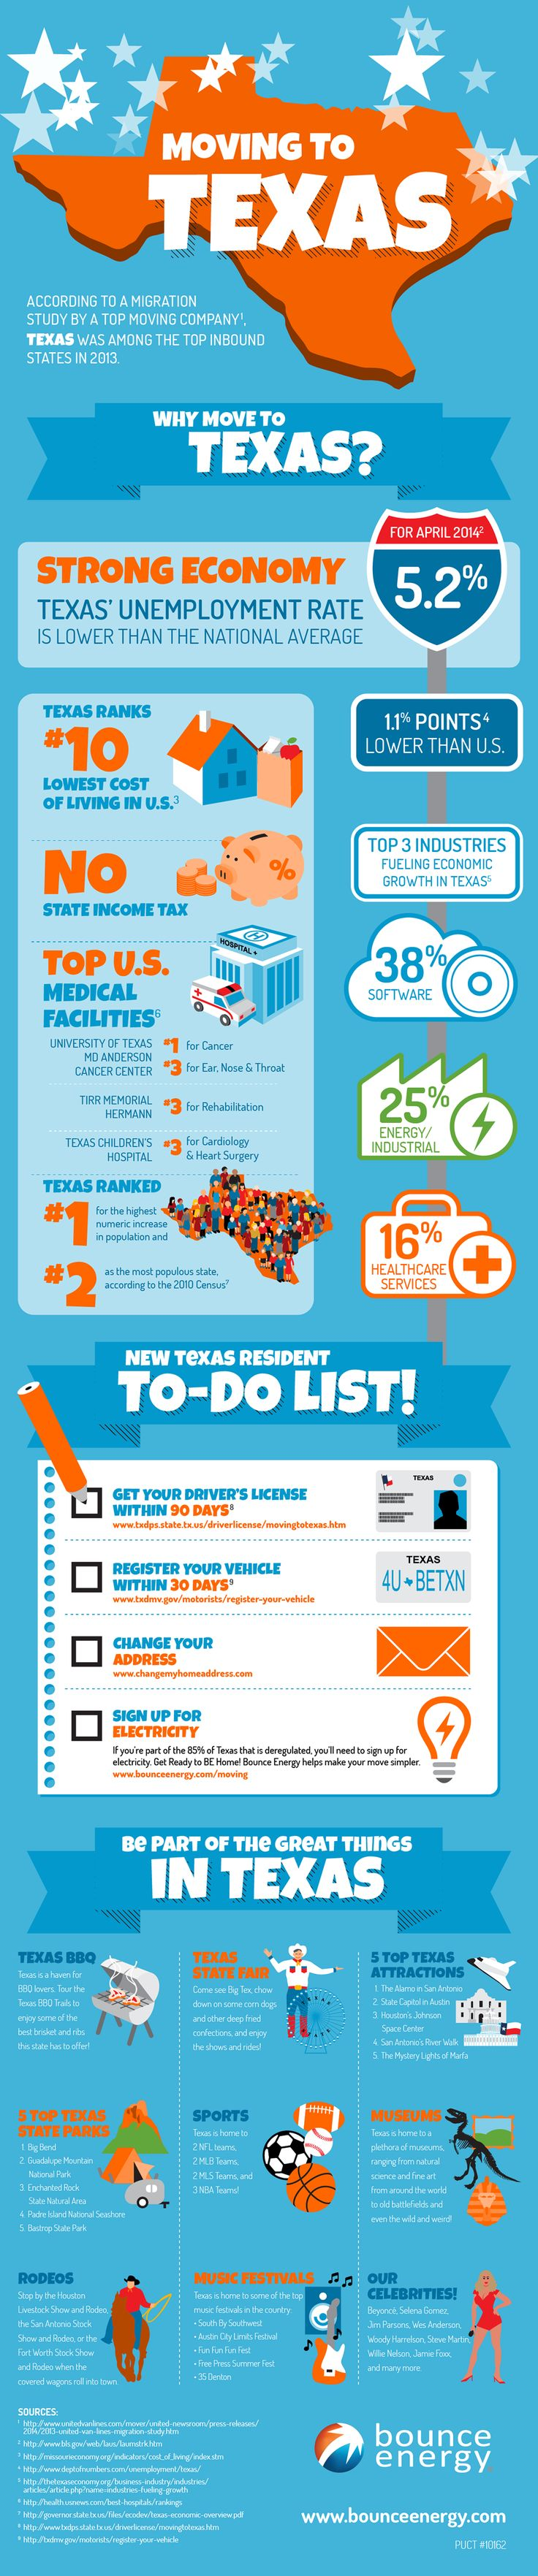 Are you planning a move to #Texas? Texas is home to some of the fastest growing cities in America - our low unemployment rate, low cost of living, and medical centers are just some of the few reasons why more people are proud to call Texas home. Learn why thousands of people are making the move to Texas each year!